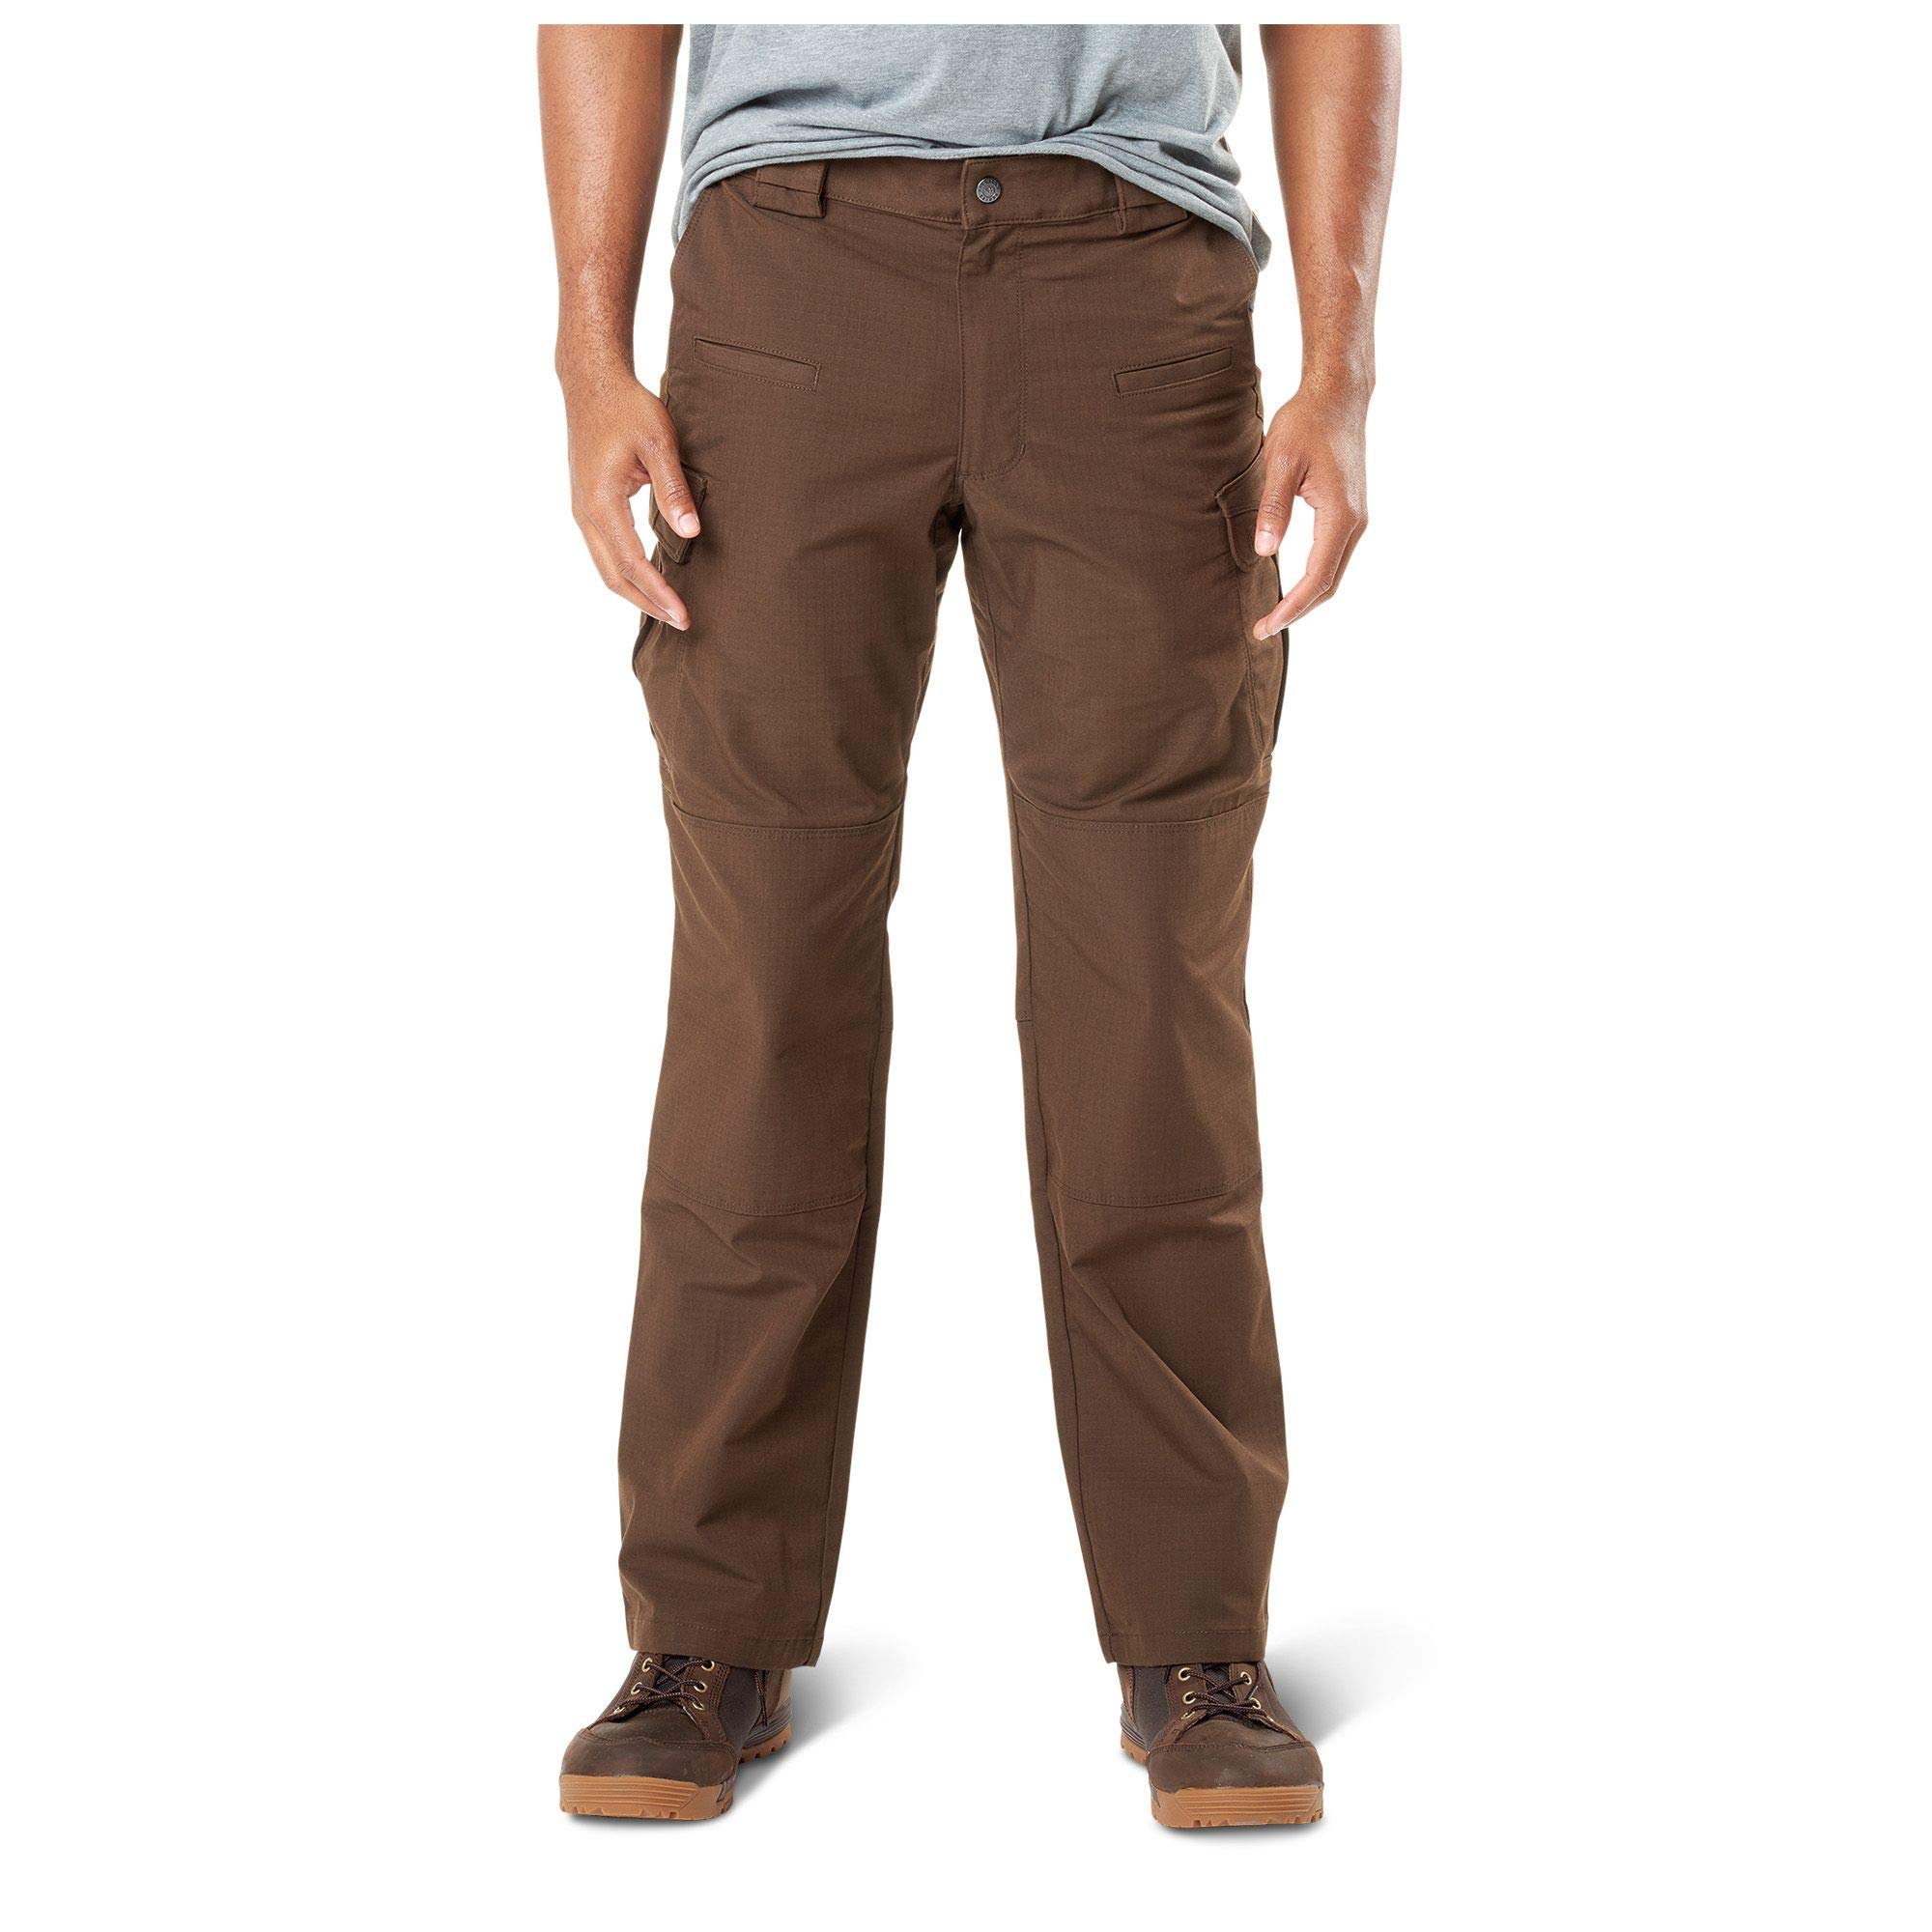 5.11 Men's Stryke Tactical Military Cargo Work Pant with Flex-Tac, Style 74369, Burnt, 34W x 34L